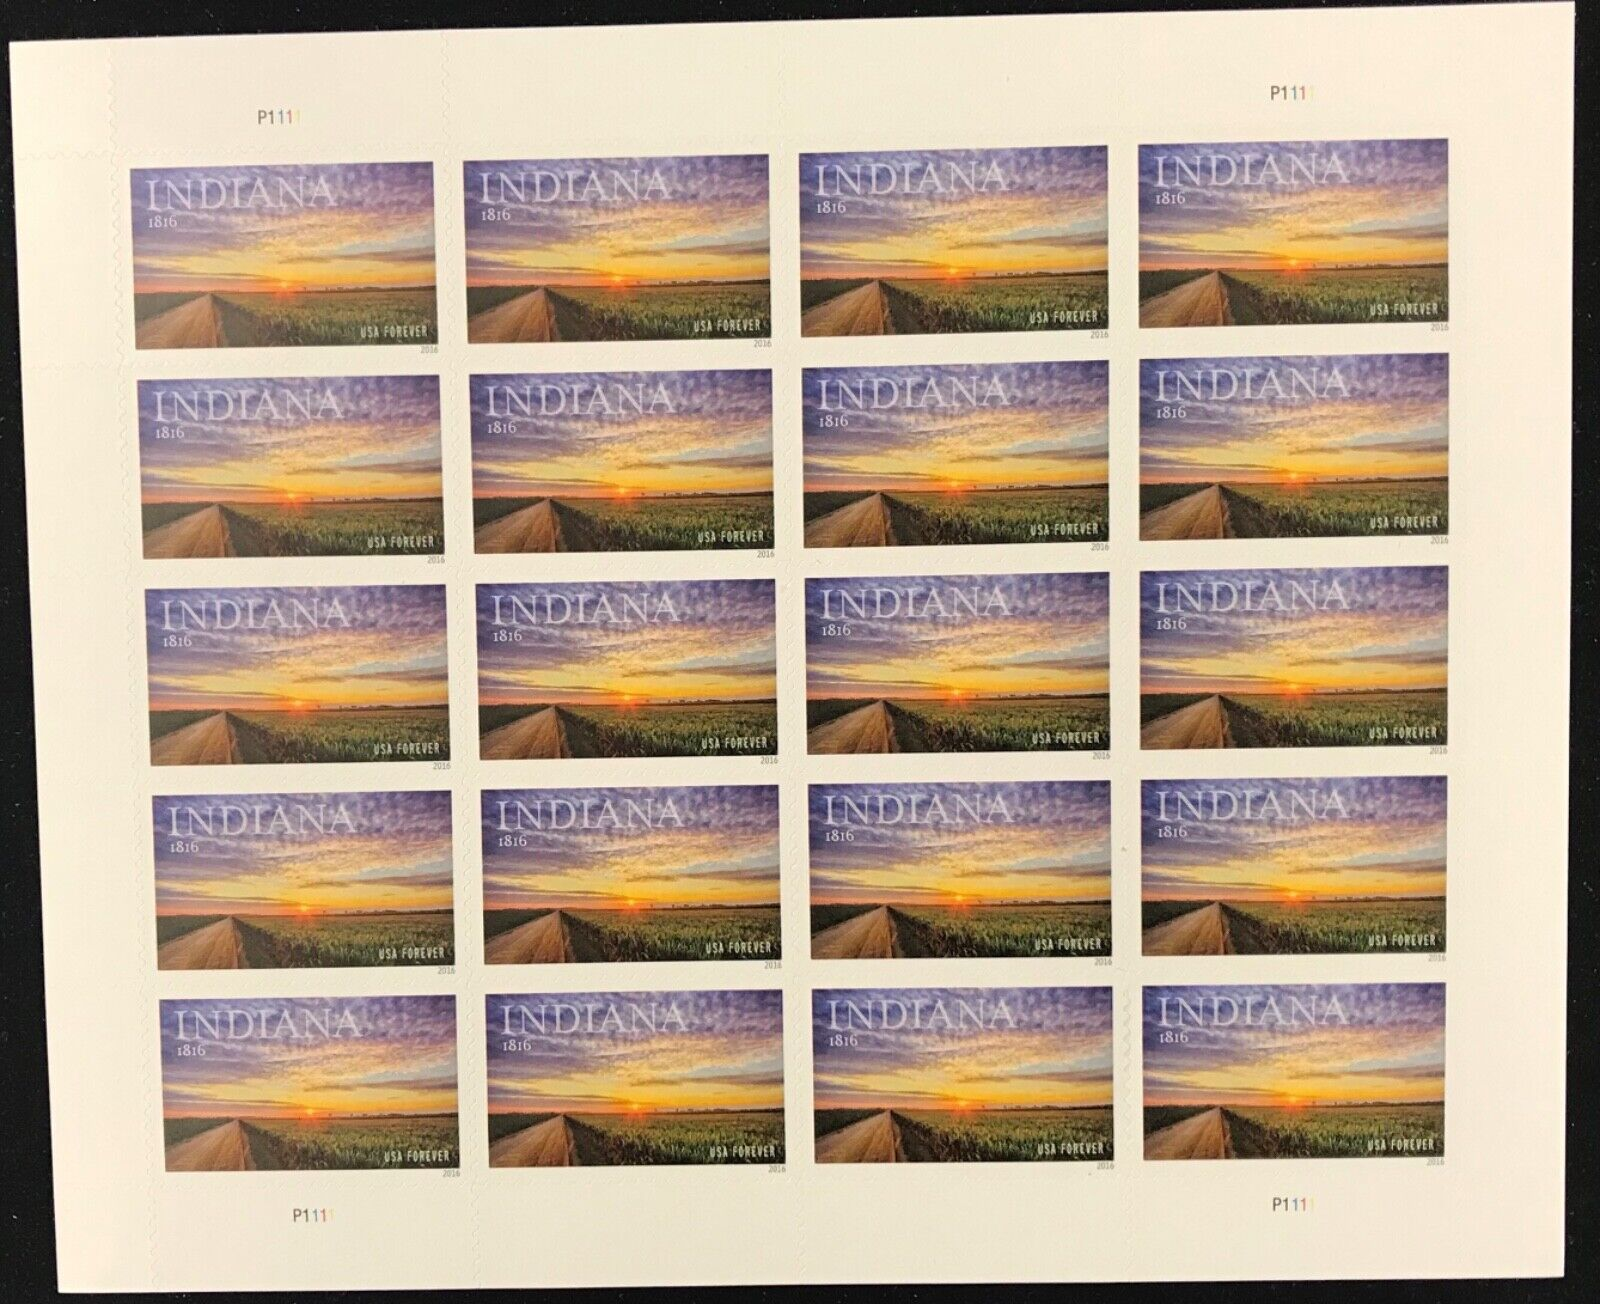 5091  Indiana Statehood    MNH Forever sheet of 20      FV $11.00    Issued 2016